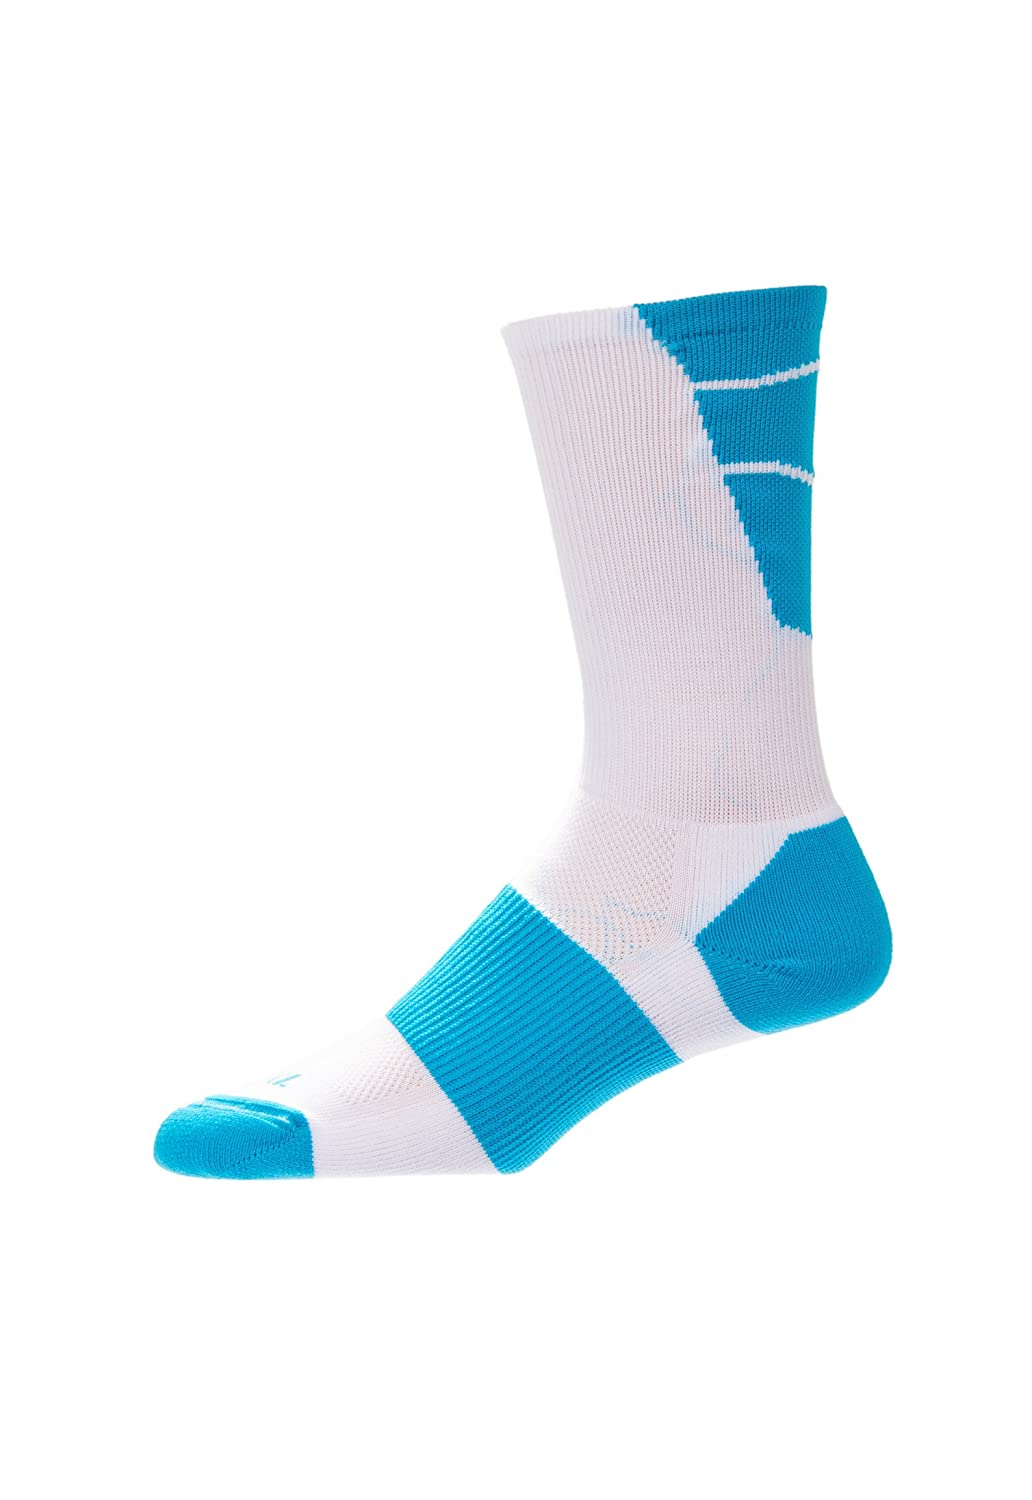 CSI Point Guard Performance Crew Socks Made In The USA White/Paradise Blue 6MAN8024